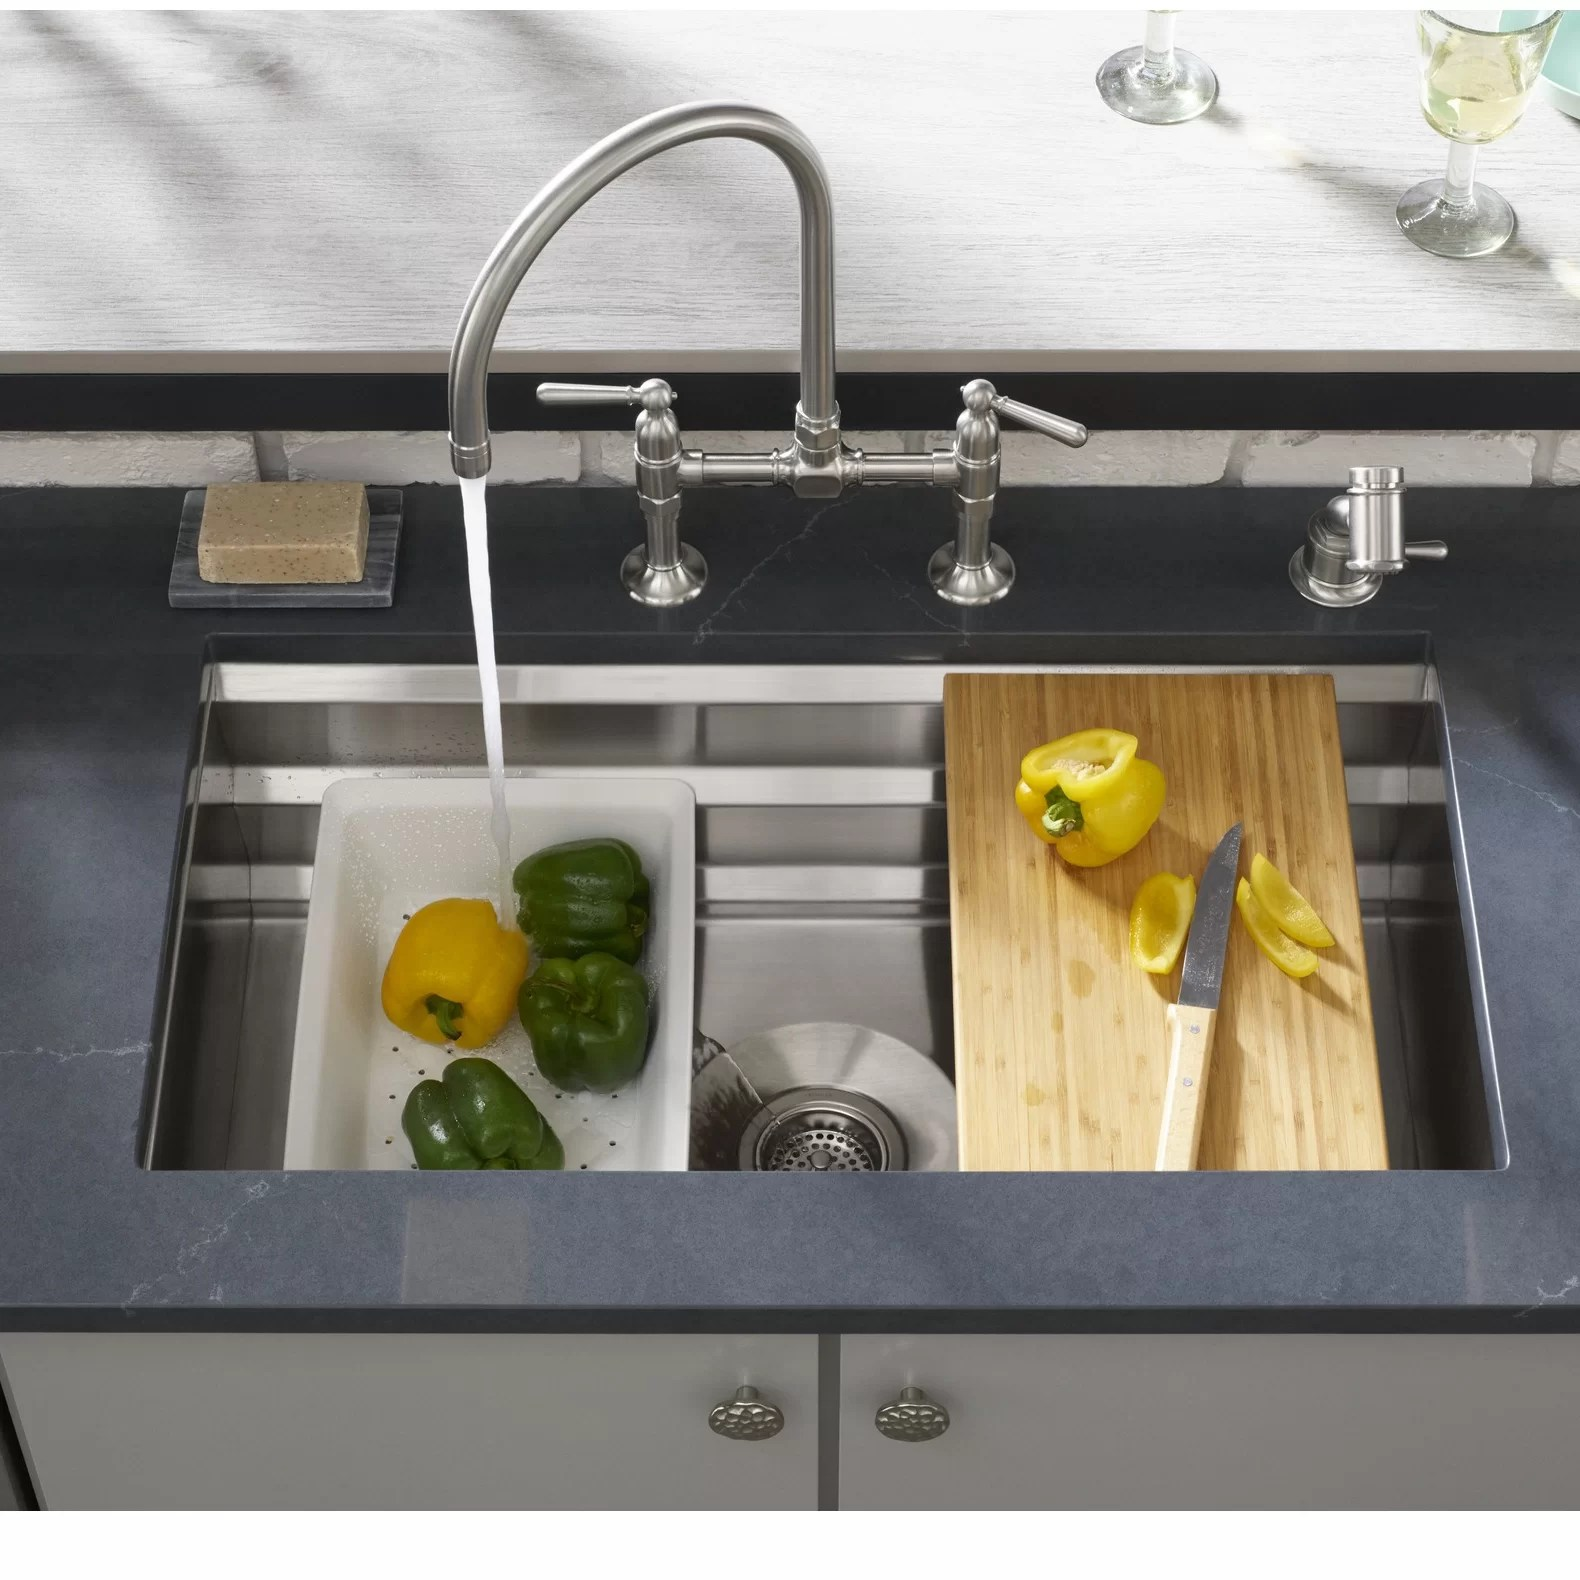 prolific 29 in x 17 3 4 in x 10 in under mount single bowl kitchen sink with accessories